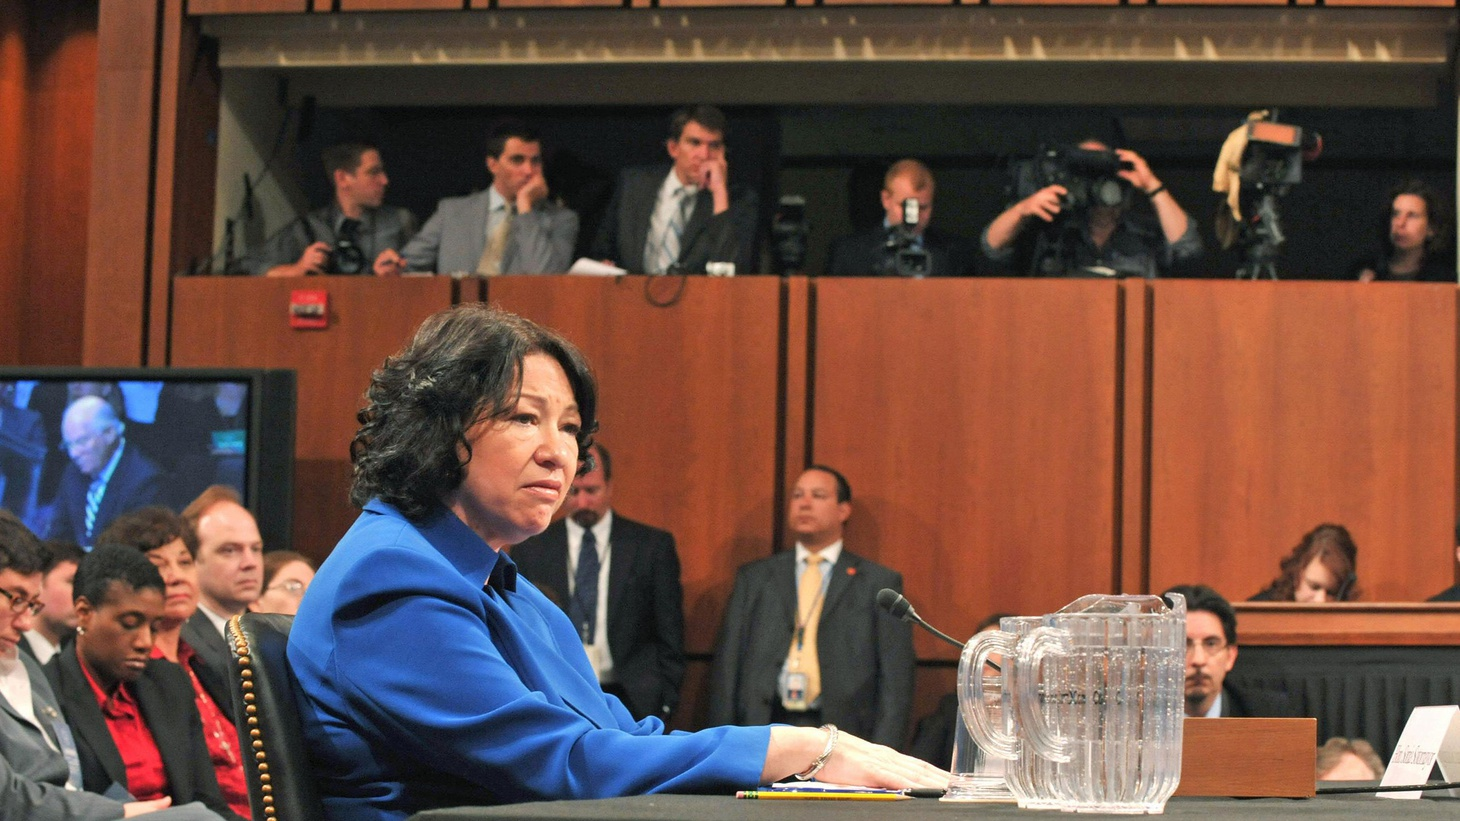 Listen to live confirmation hearings on Judge Sonia Sotomayor's nomination to the US Supreme Court on KCRW.com. KCRW News will broadcast the hearings all week, beginning Monday at 7am.